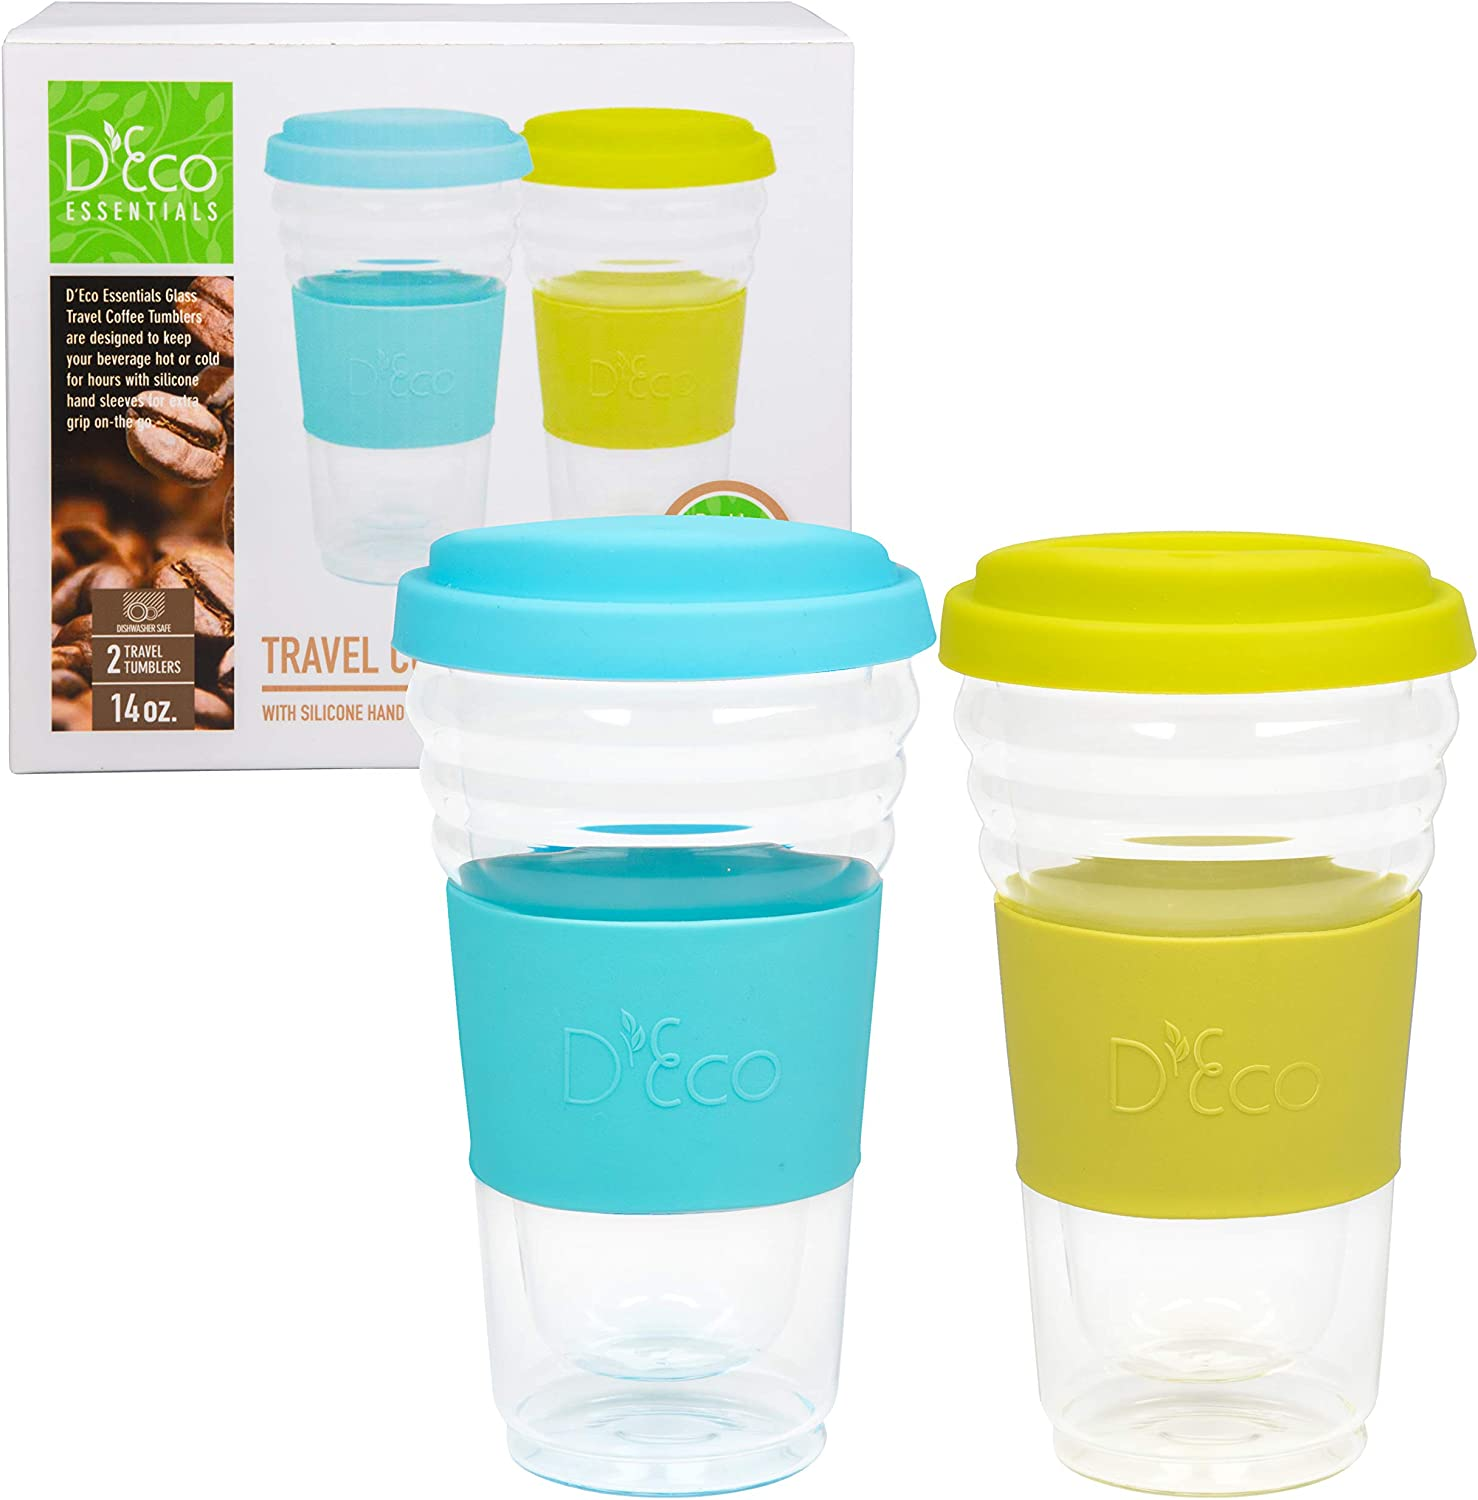 Double Wall Glass Coffee Cup Tumbler with Silicone Lid - Set of 2-14oz Insulated Travel Coffee Mug for Coffee, Tea, Hot & Cold Drinks,